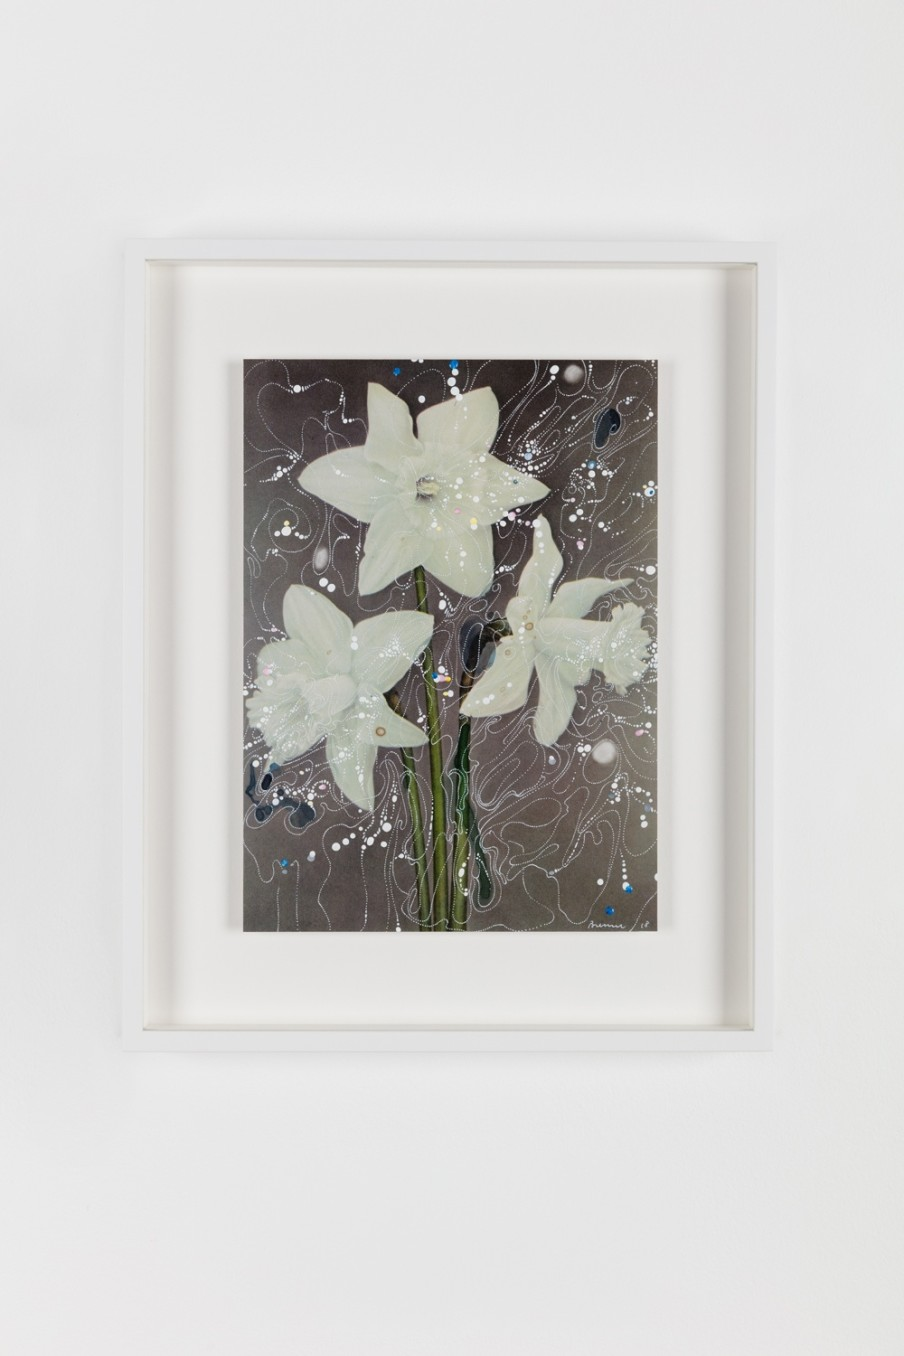 Sebastiaan Bremer, White Trumpet Daffodil Beershebas, 2018, Archival inkjet pigment print on resin coated paper with hand additions in acrylic, photo retouch dye, and pigment pen, 27.9 x 20.3 cm, 11 x 8 in, Framed: 38.6 x 31.2 x 3.7 cm, 15 1/4 x 12 1/4 x